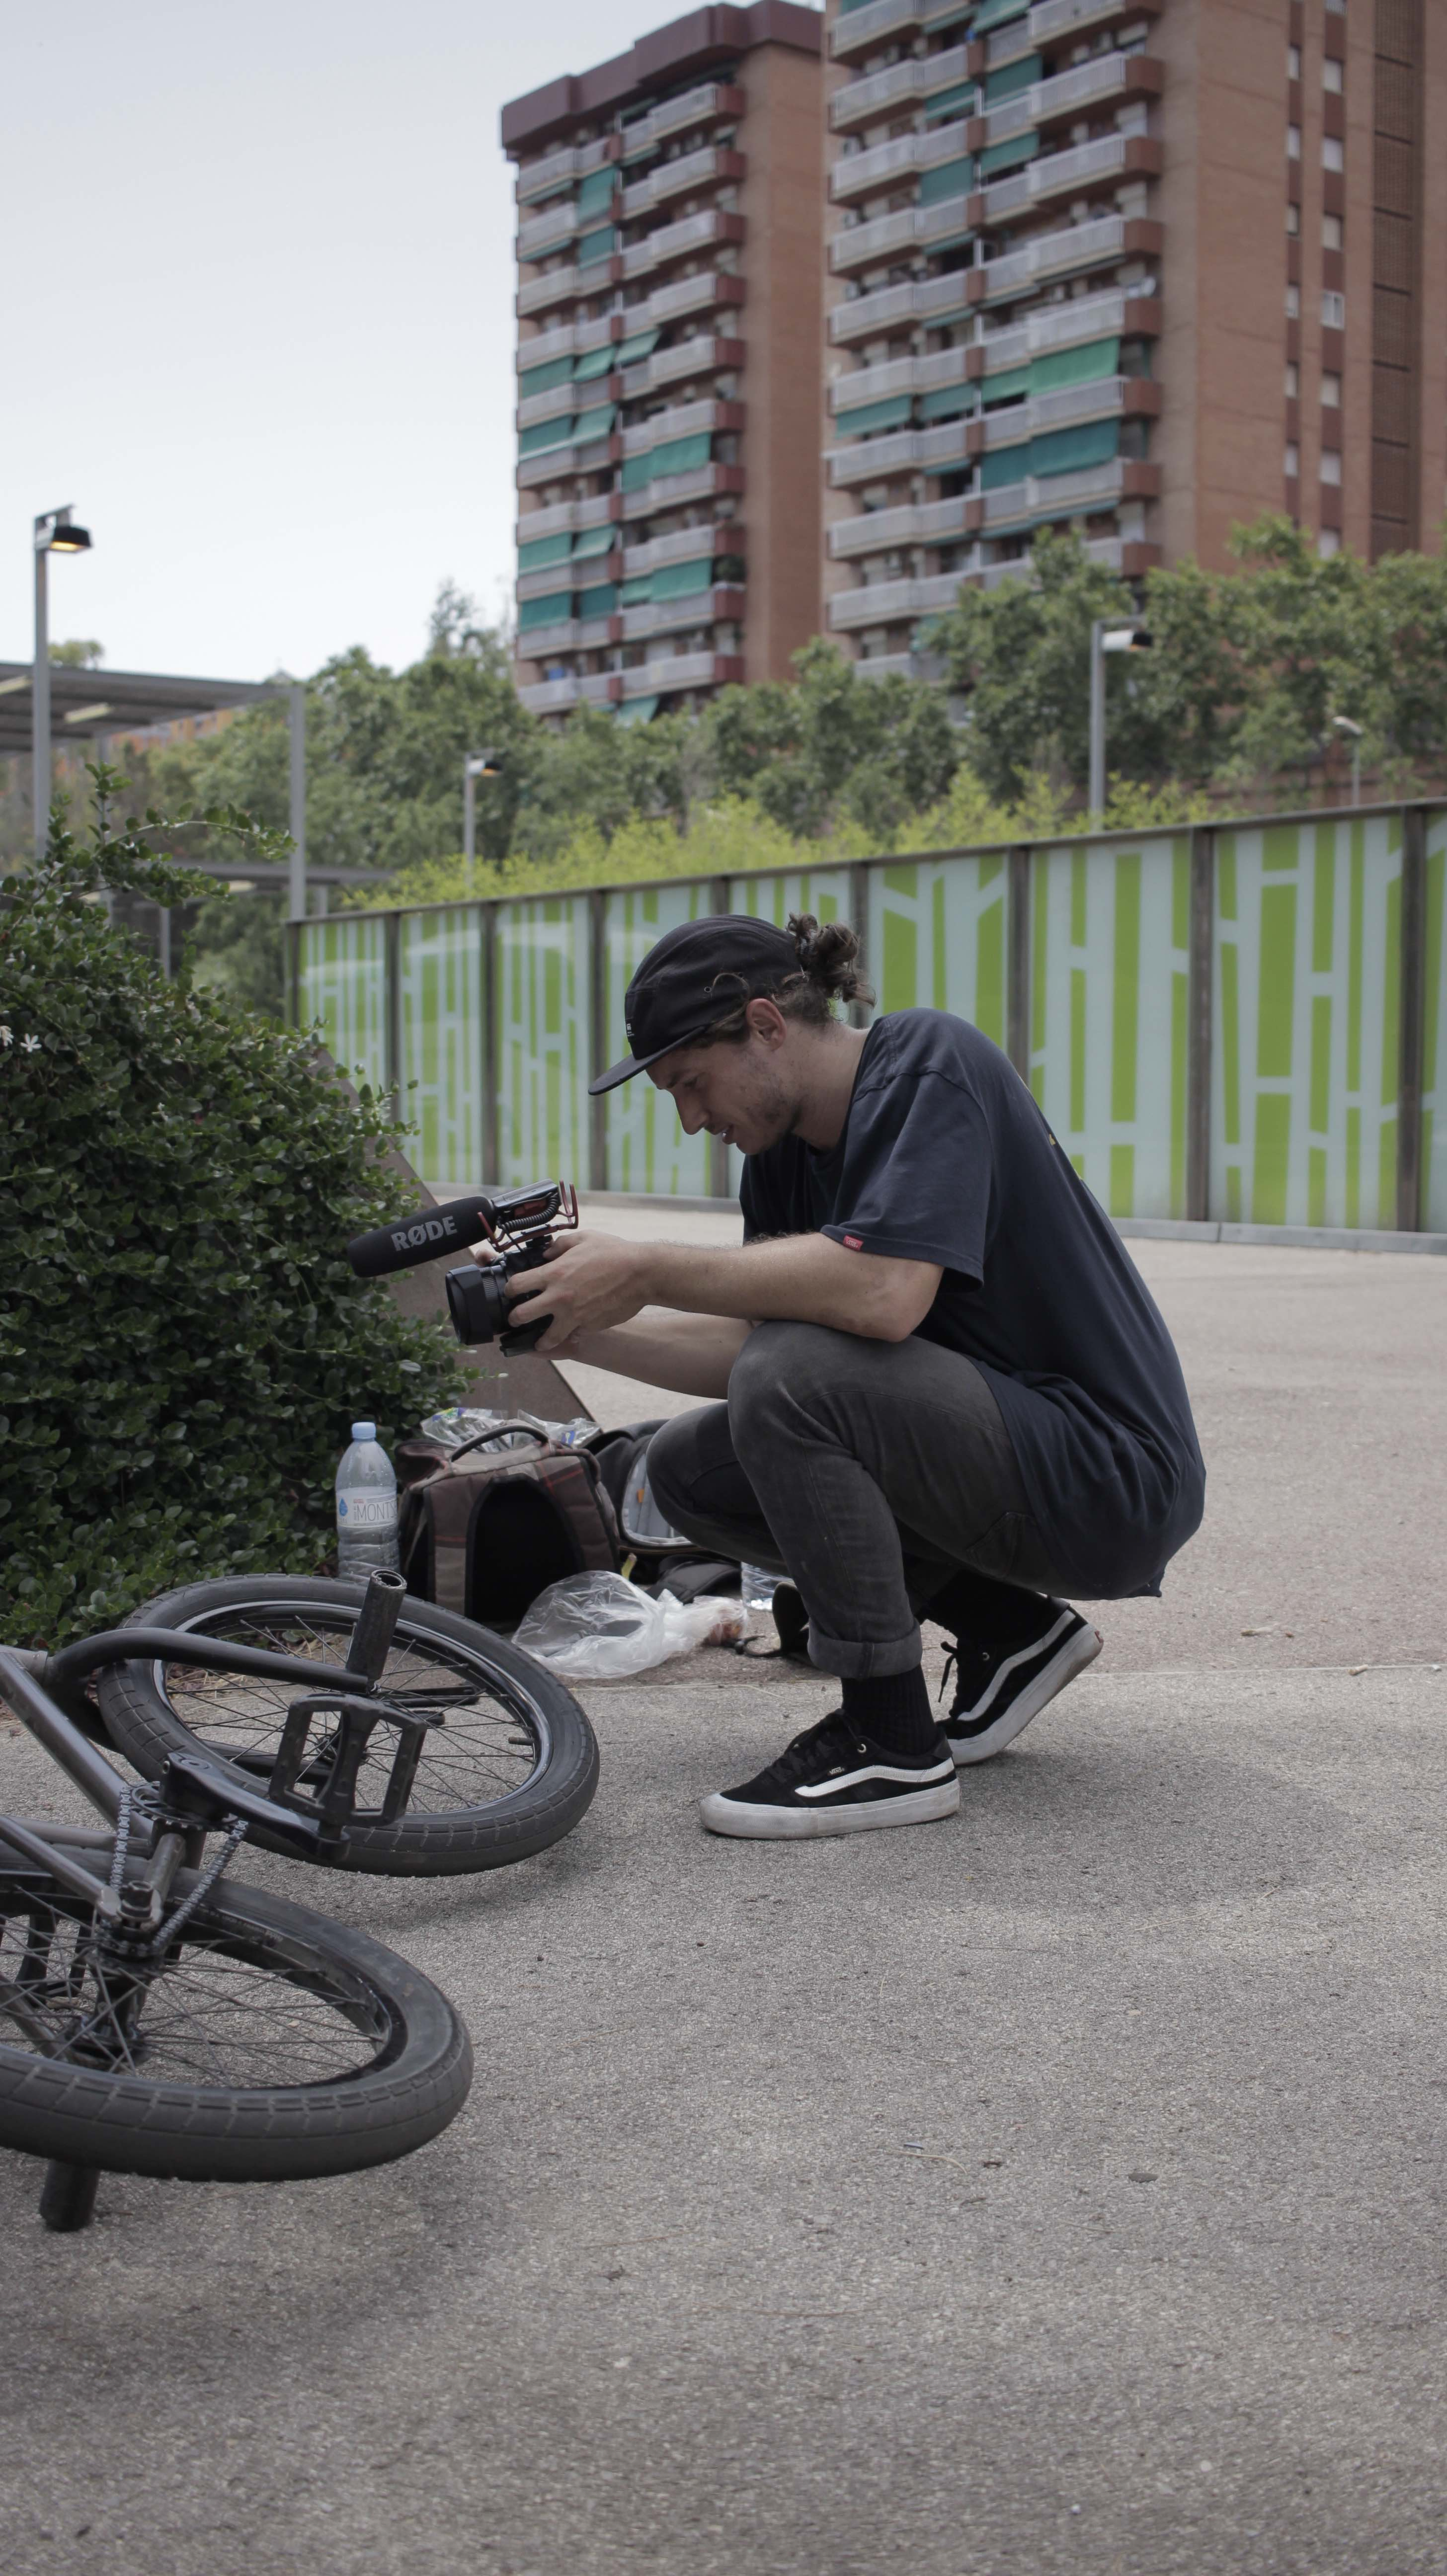 Filming BMX in Spain for Snacking Barcelona